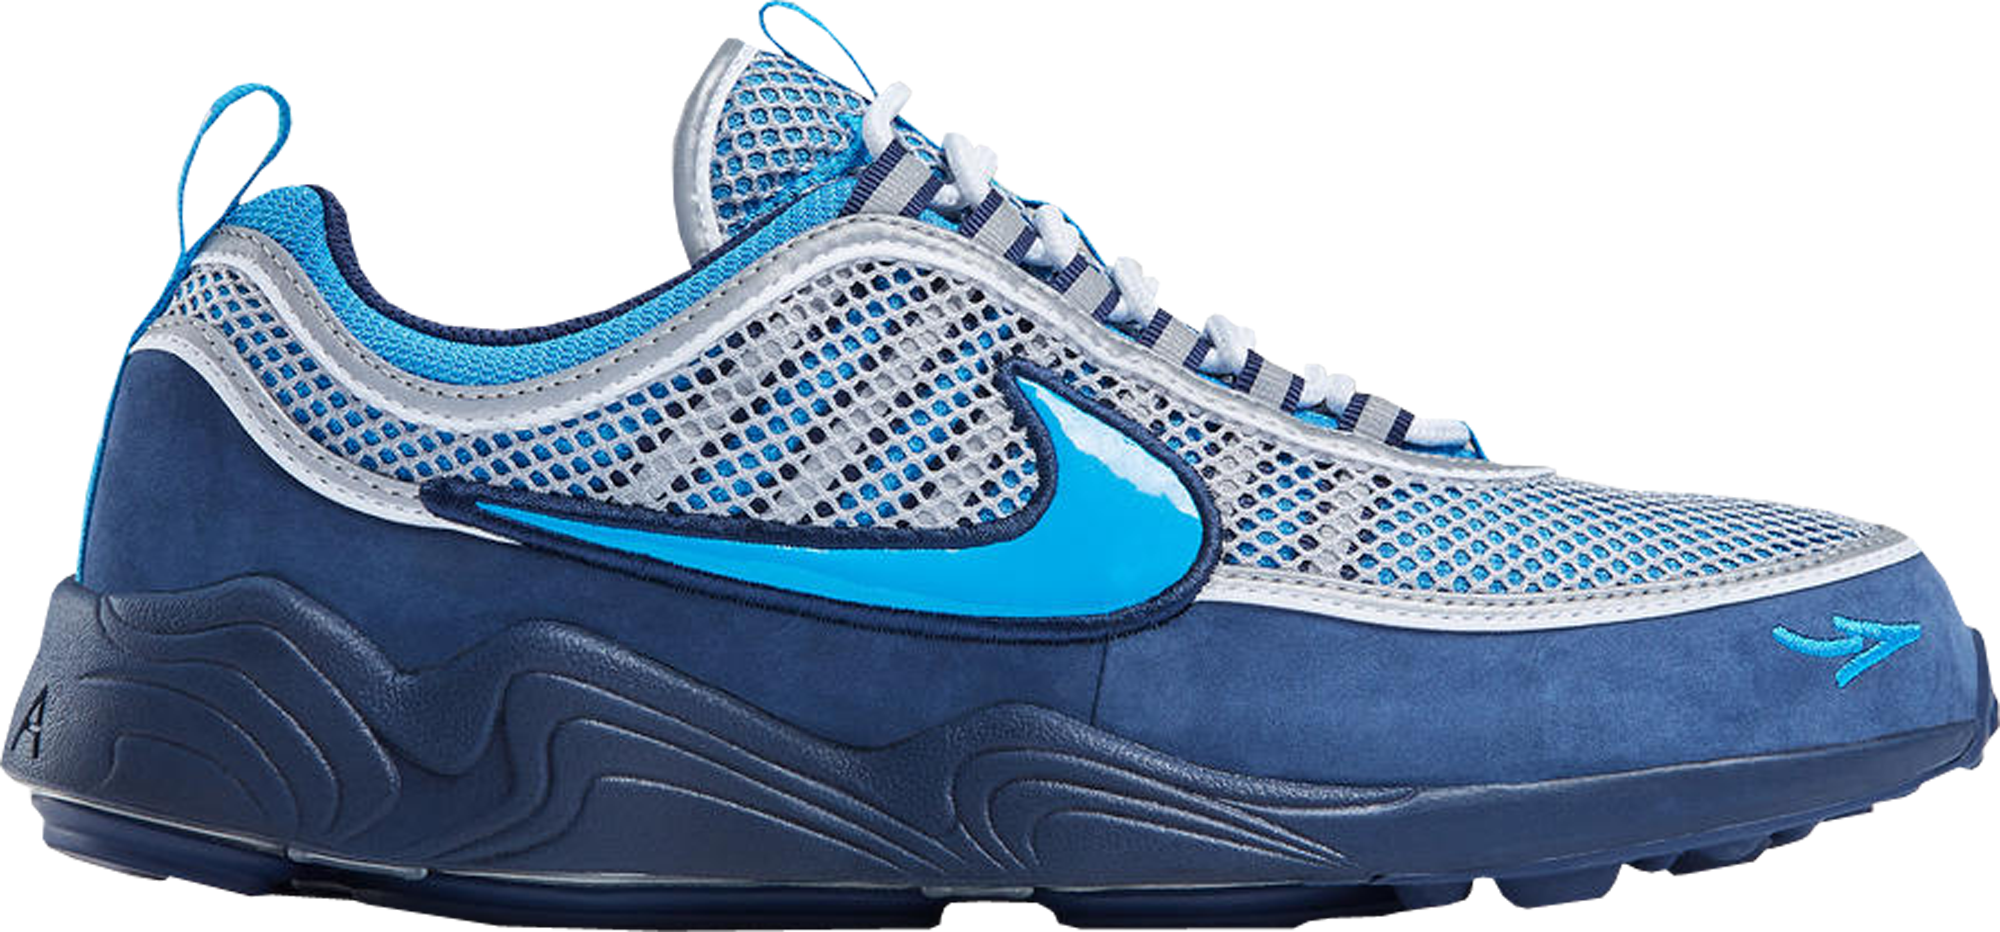 Air Zoom Spiridon 16 Stash